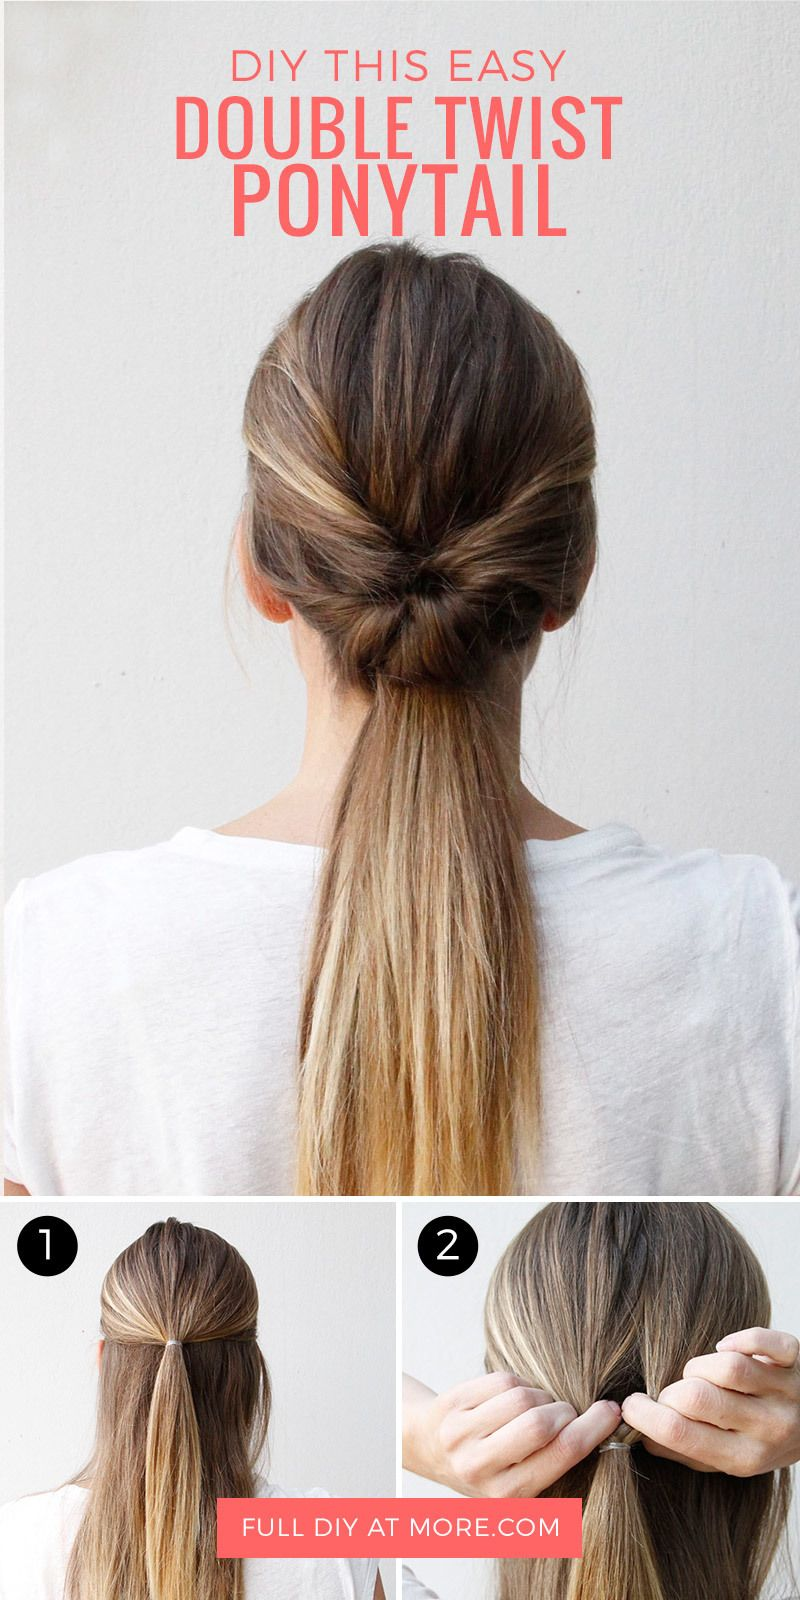 This doubletwist ponytail is the perfect fiveminute hairstyle